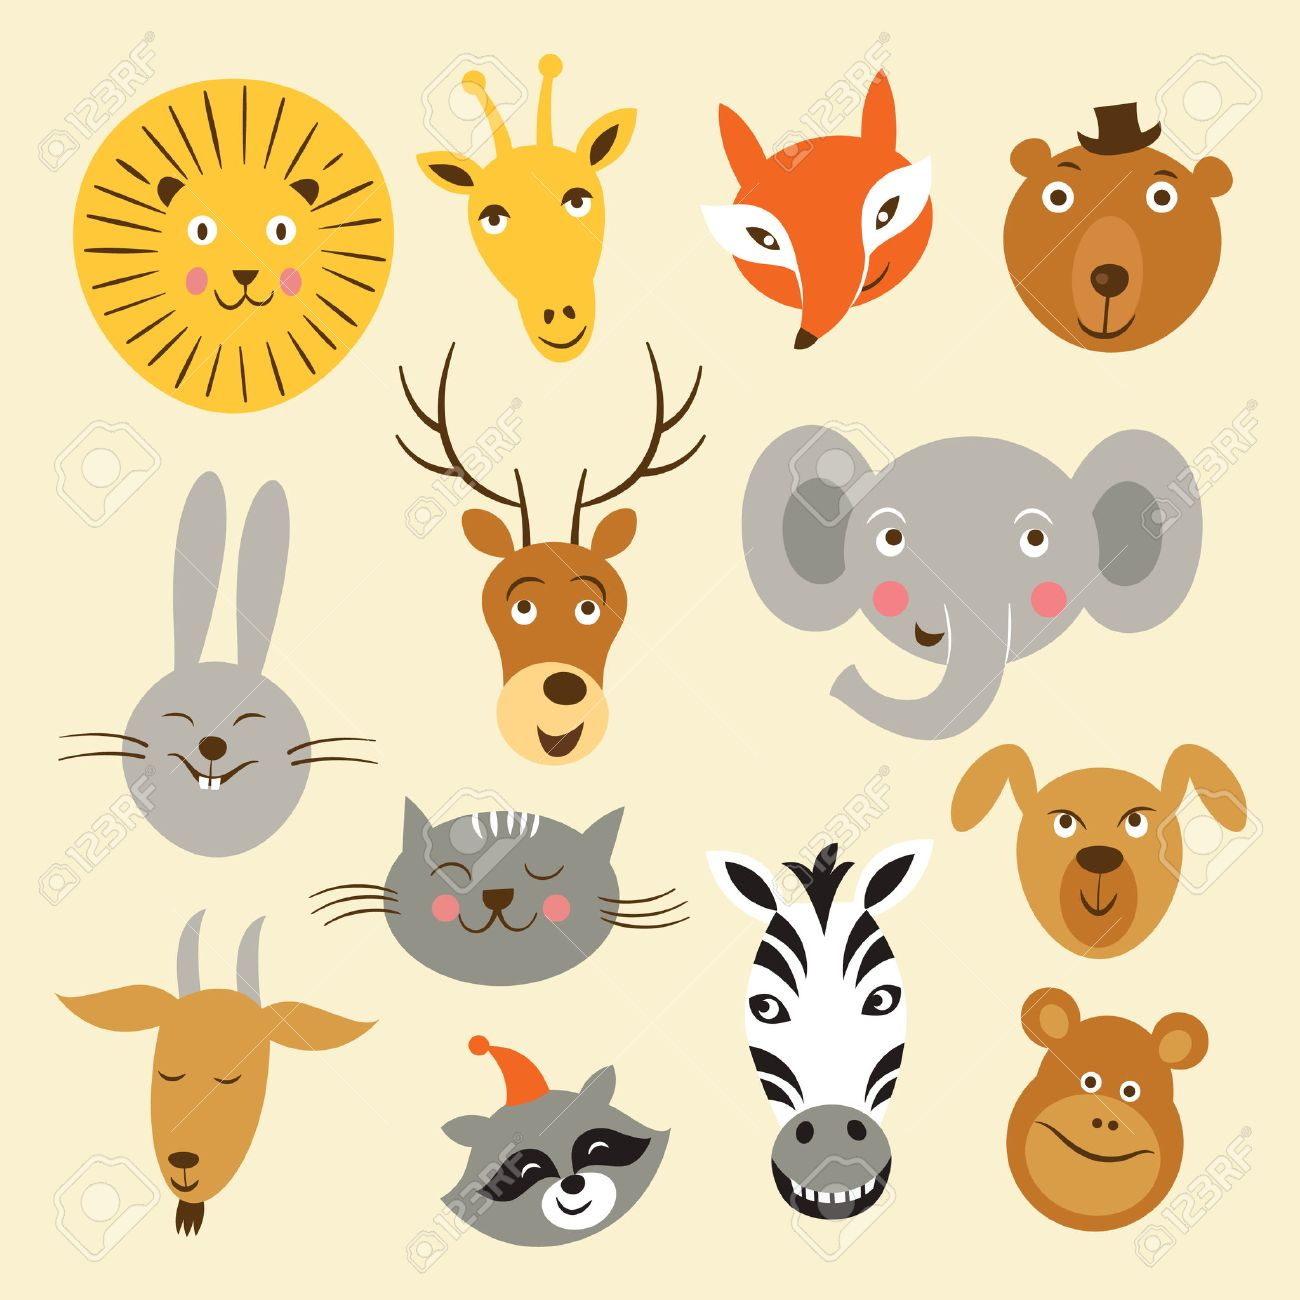 Vector illustration of animal faces Stock Vector - 22504595